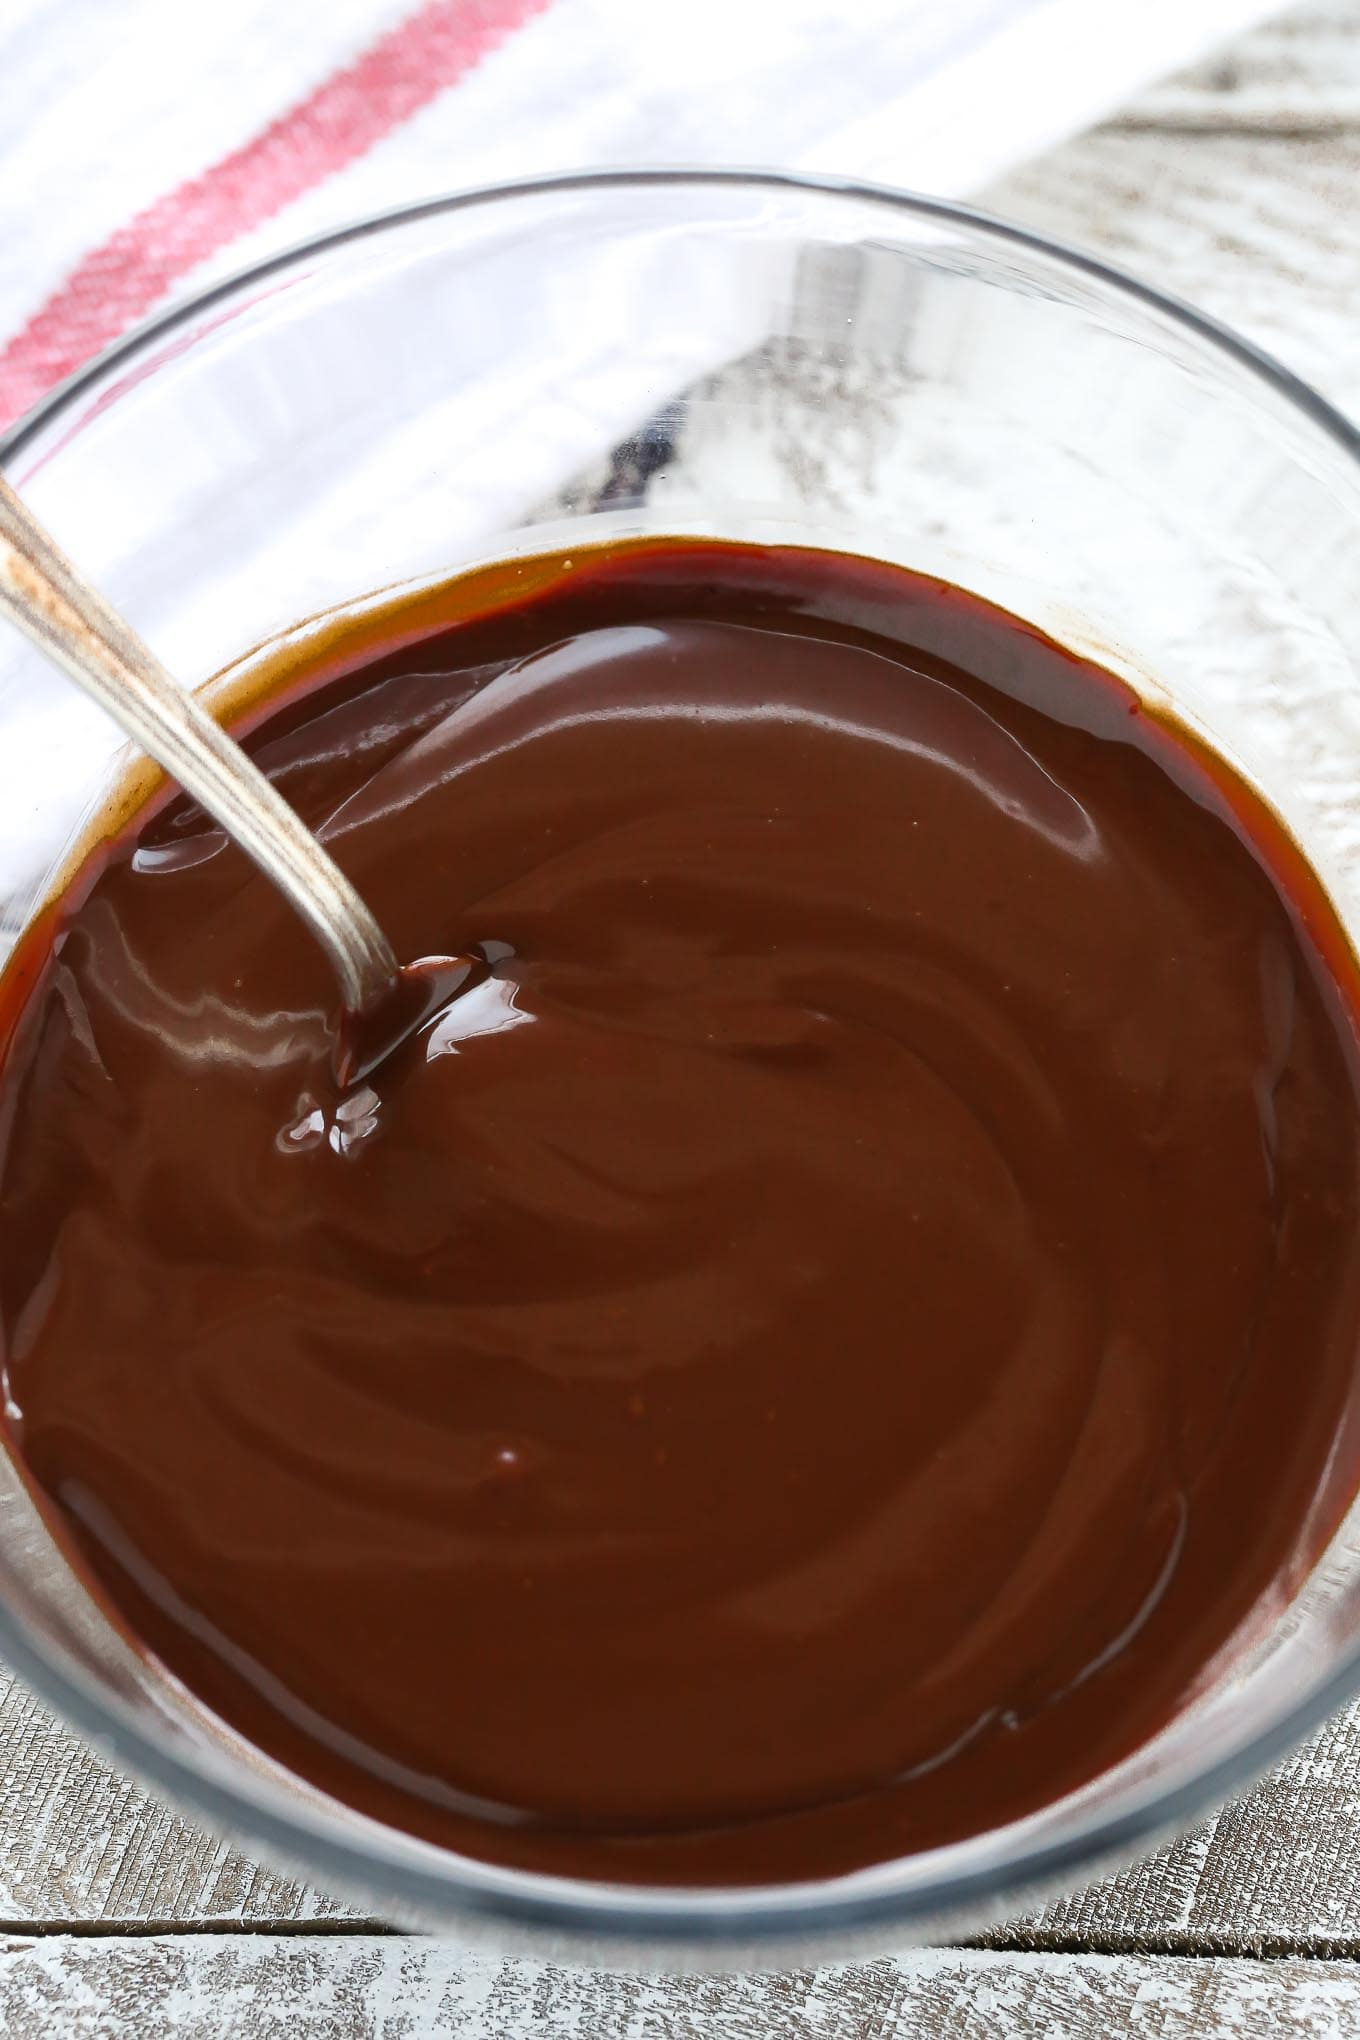 Learn how to make chocolate ganache with this easy tutorial. You only need chocolate, heavy whipping cream, a microwave, and 5 minutes to make this simple ganache recipe!